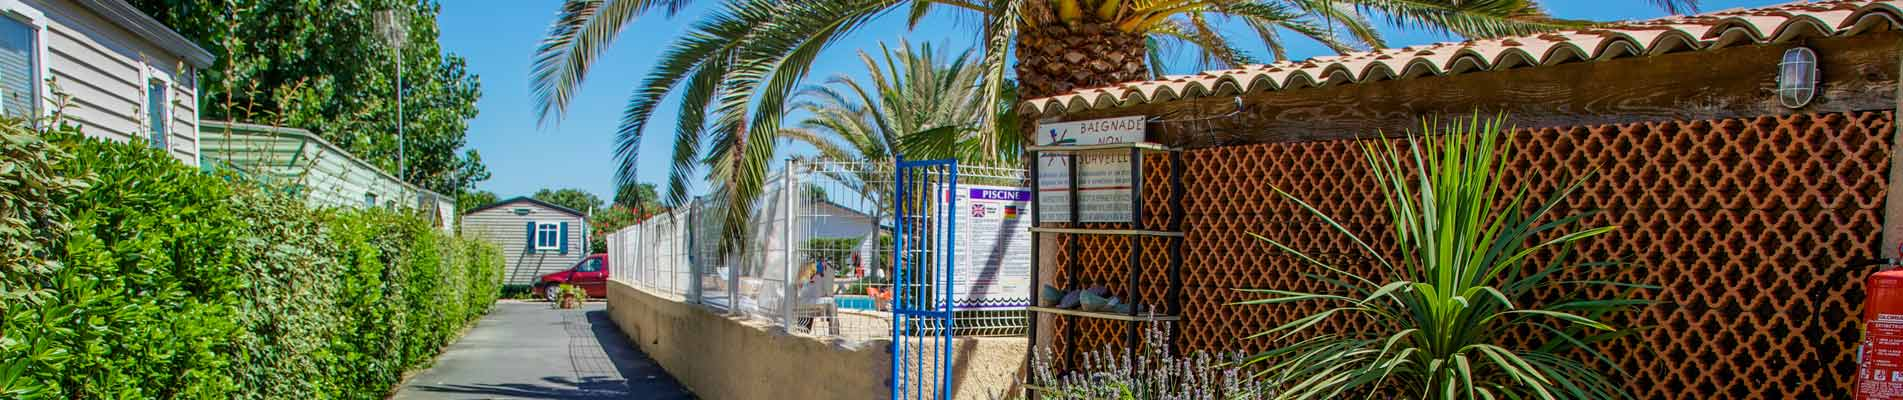 camping services herault 5 étoiles